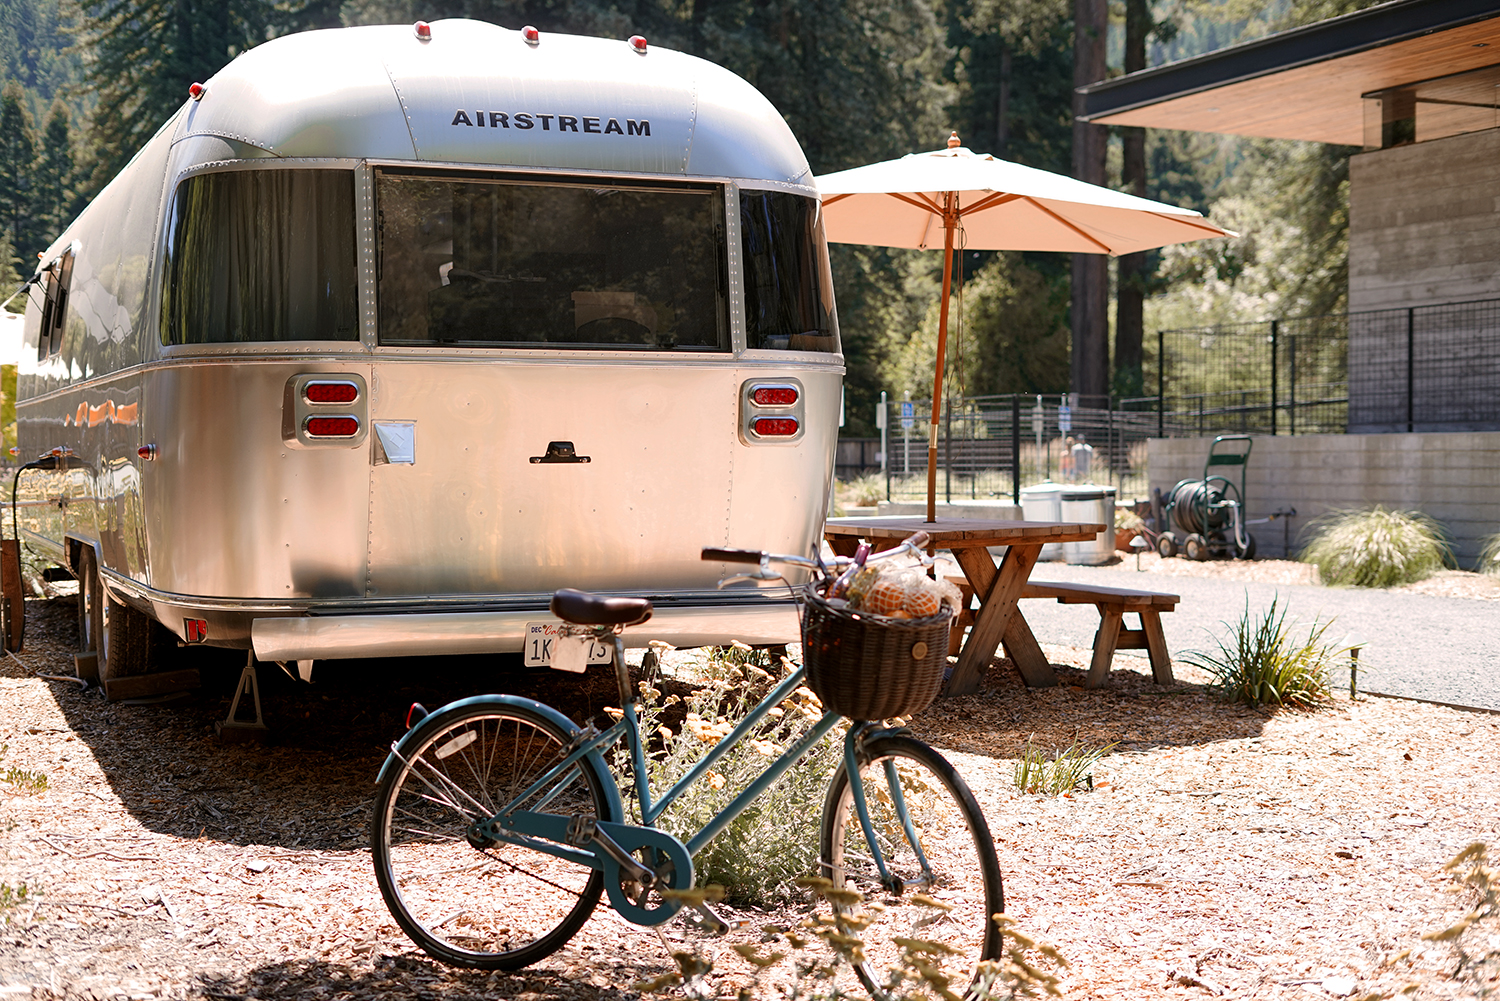 13autocamp-russianriver-sonoma-camping-bike-airstream